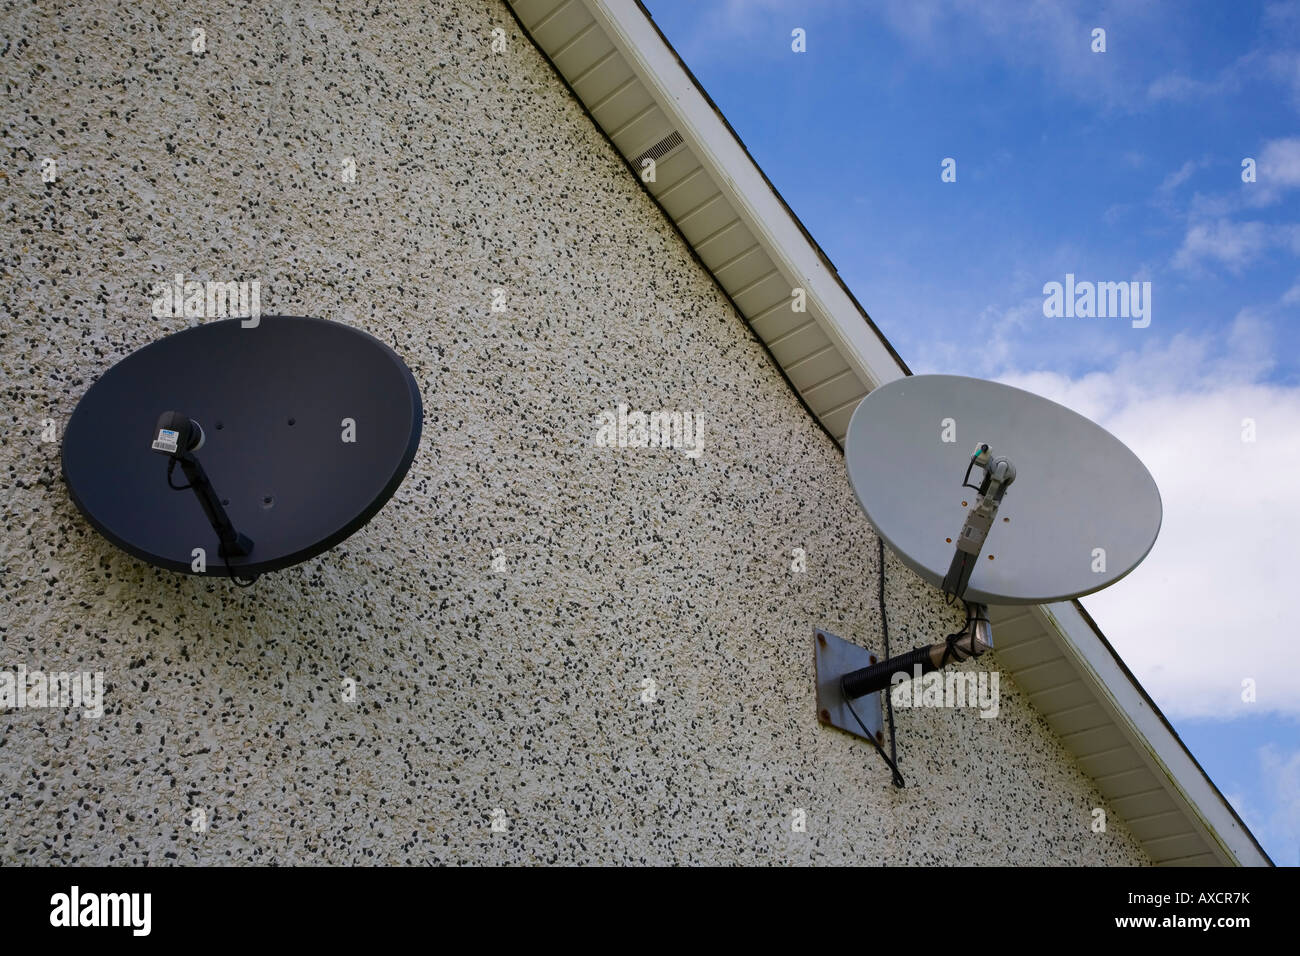 Free to air or freeview (FTA) Television and Broadband Satellite Dishes, County Waterford, Ireland - Stock Image